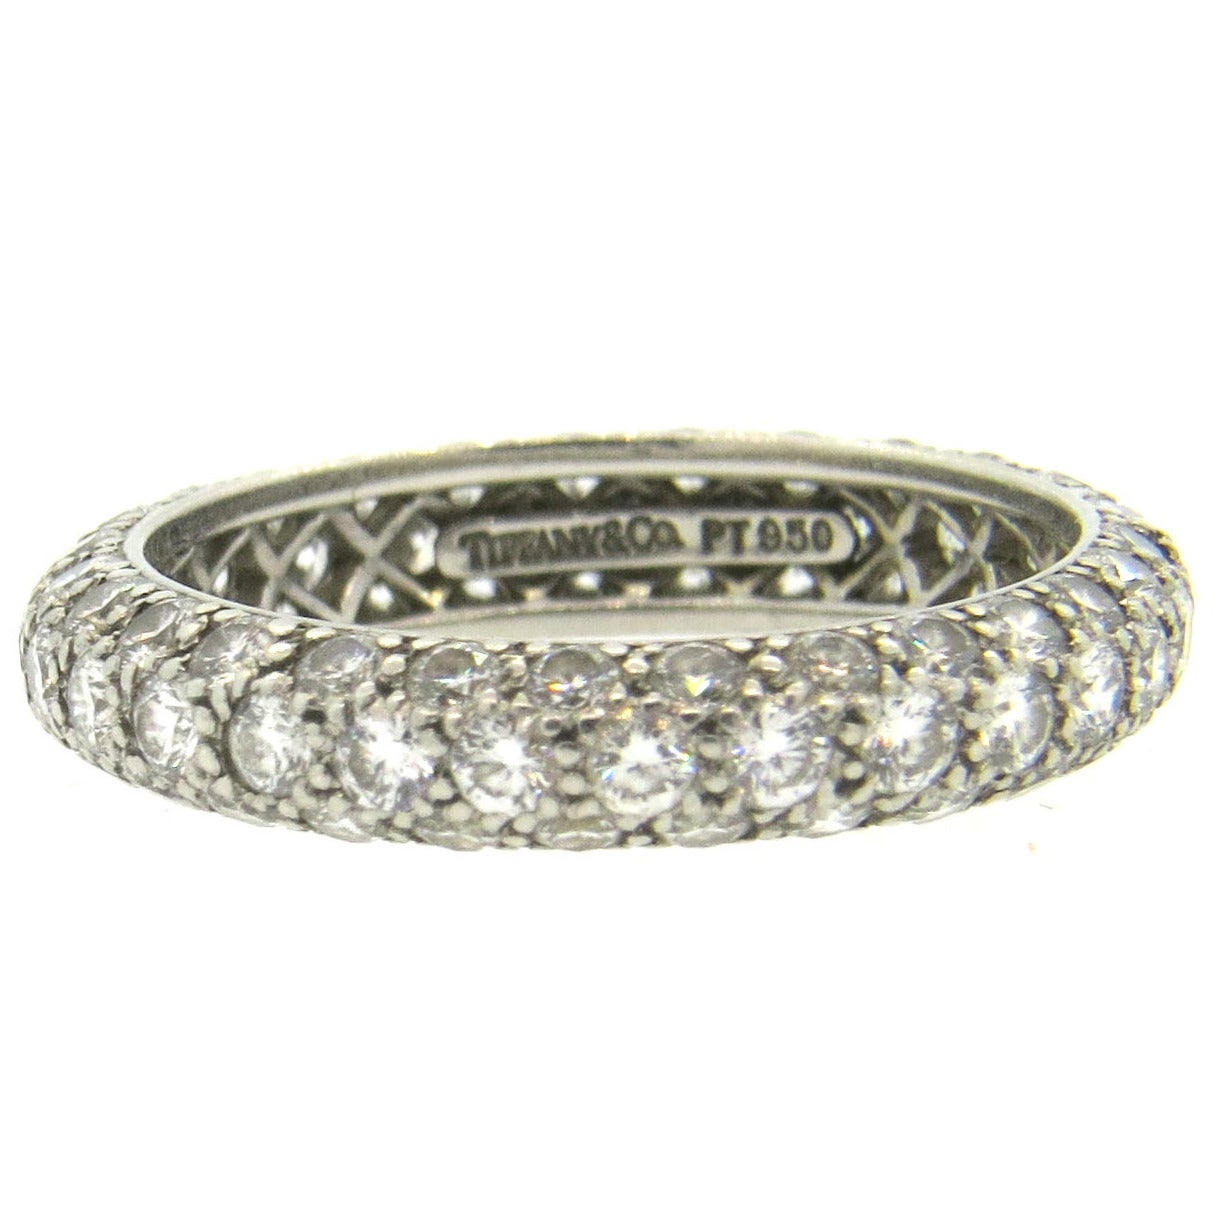 Tiffany And Co Etoile Platinum Diamond Eternity Wedding Band Ring At 1stdibs